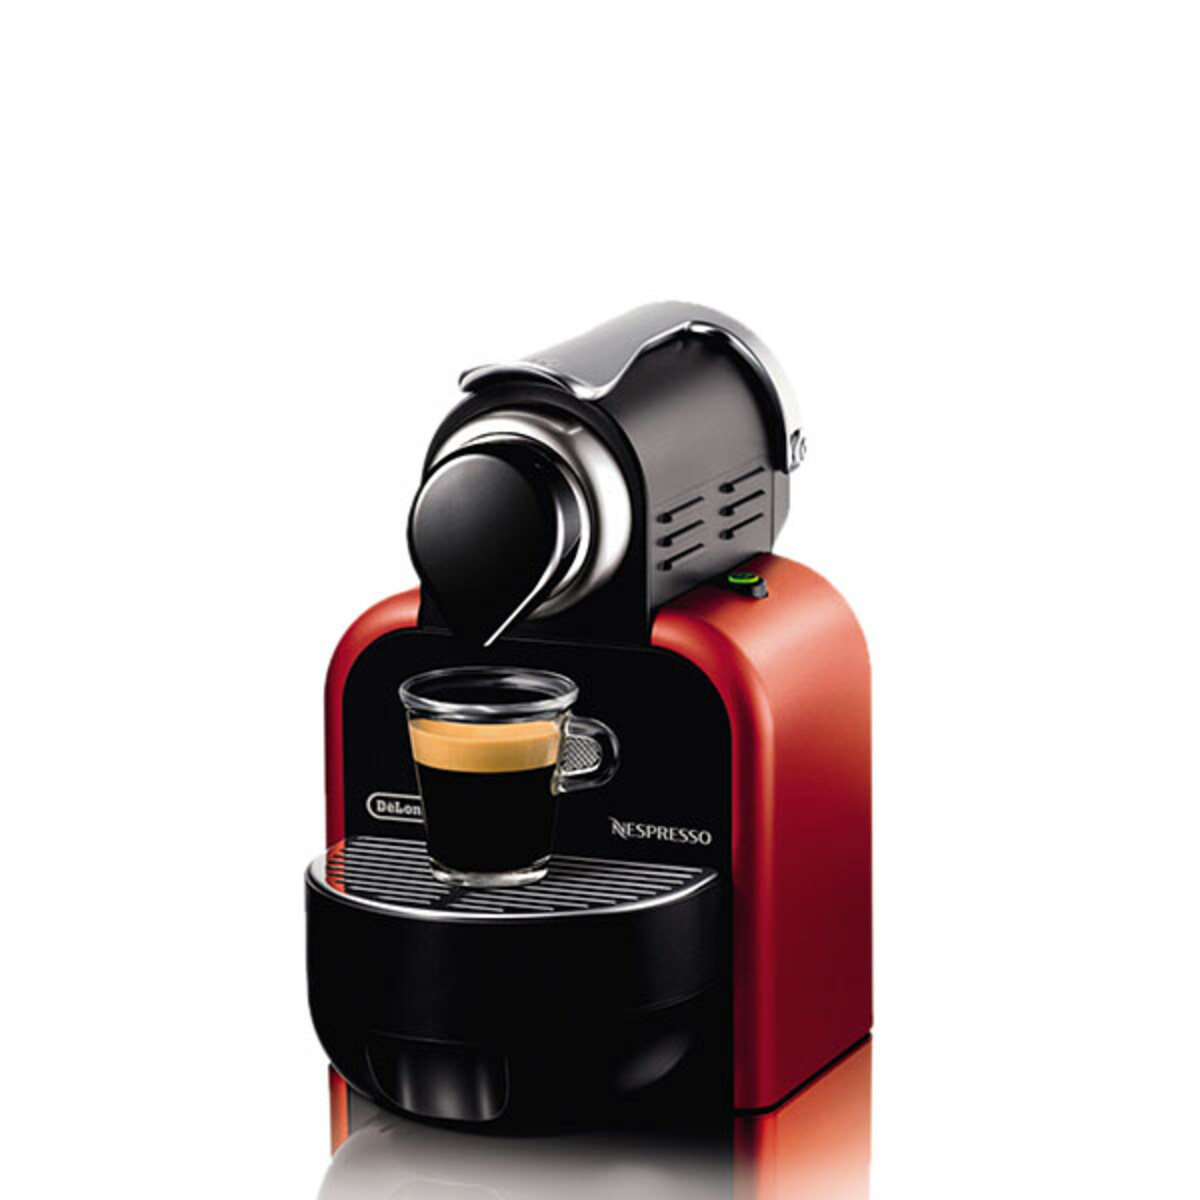 Nespresso Essenza Red